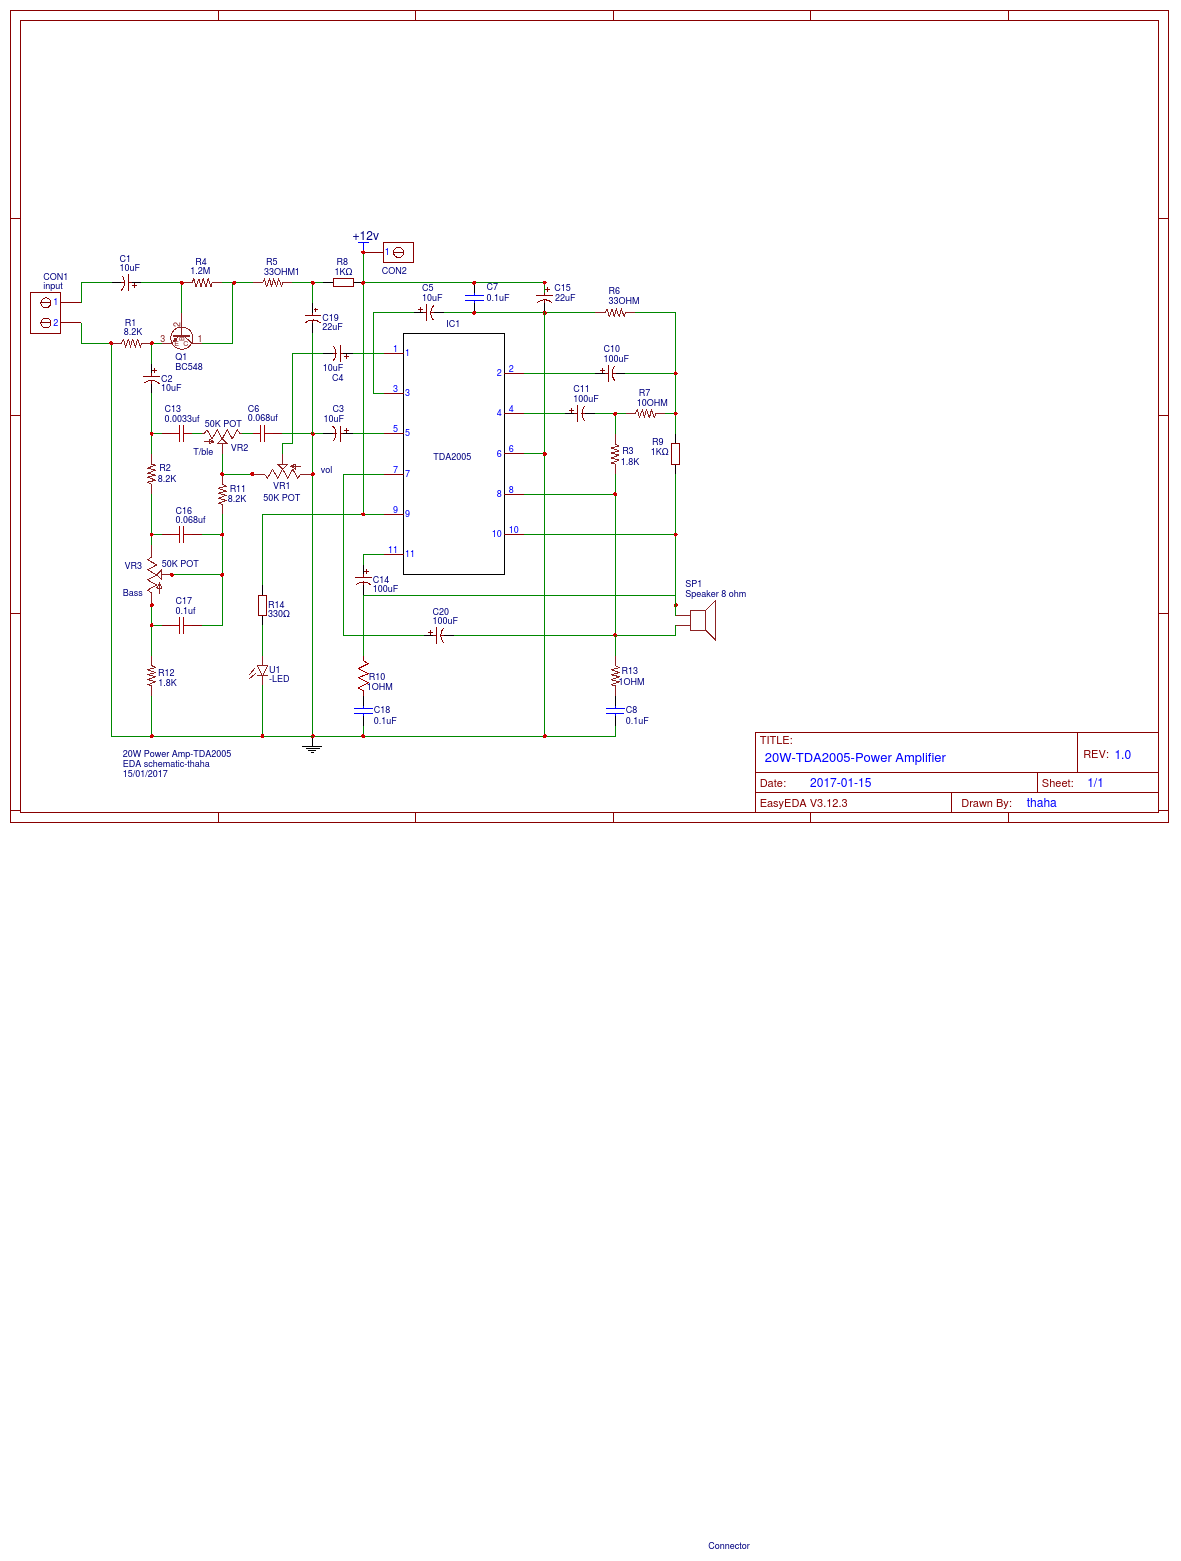 Audio Power Amp Easyeda Tda2005 Amplifier Circuit Diagram Electronic Project Apwr Smd